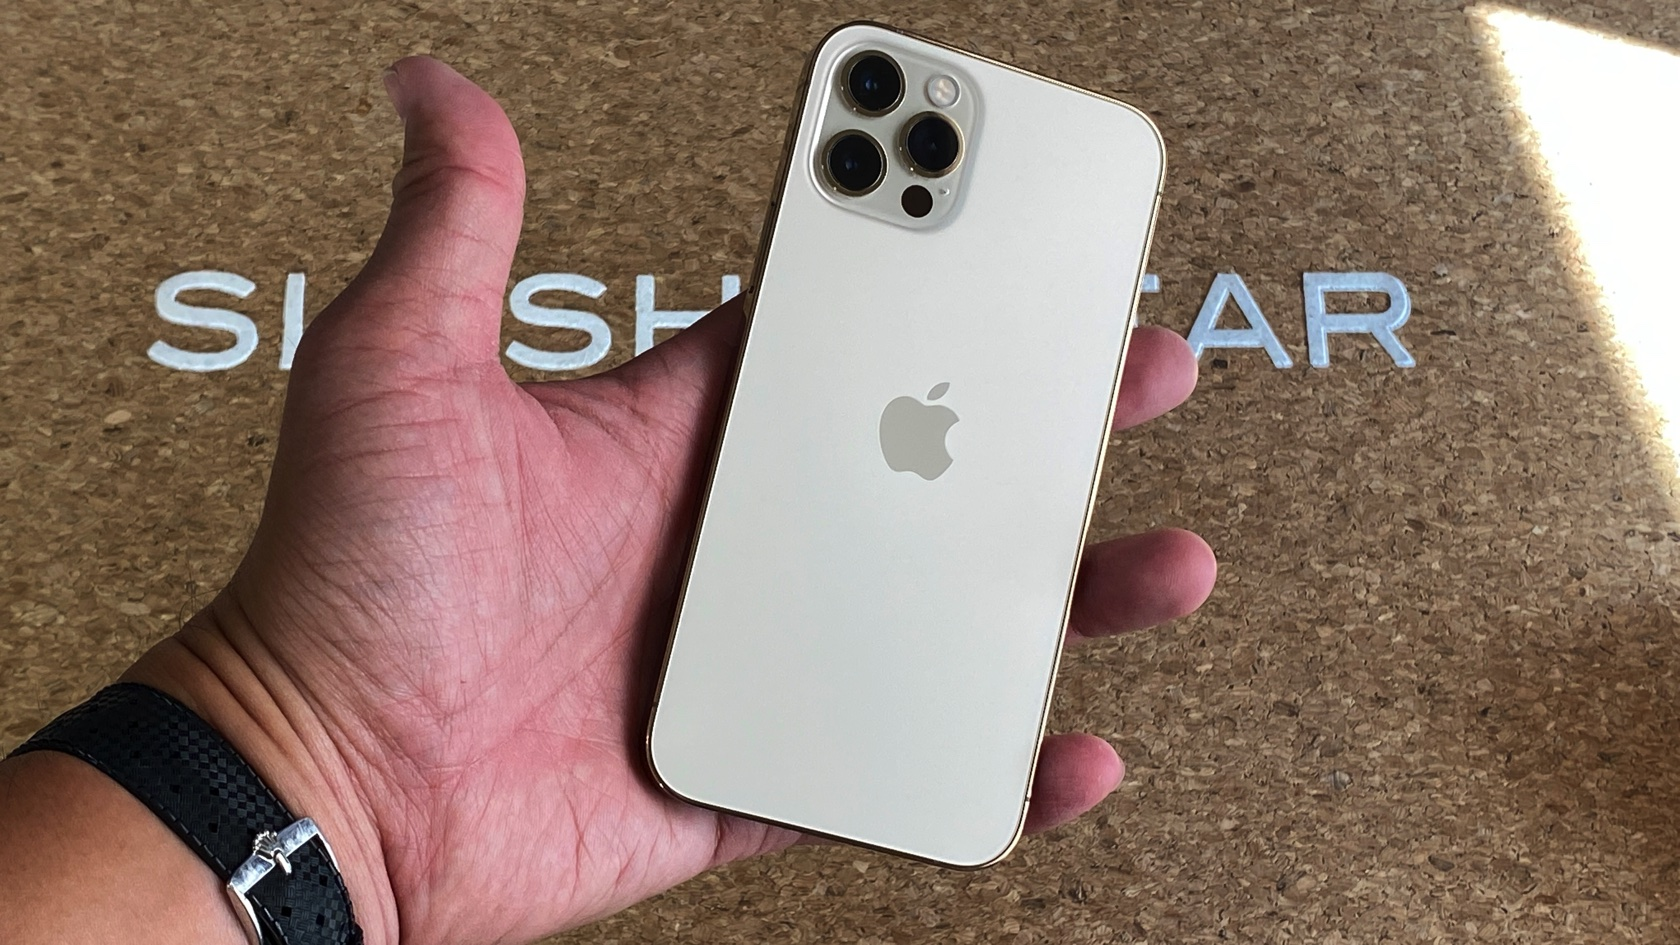 The Gold Iphone 12 Pro Is Just So Darn Pretty Hands On Slashgear